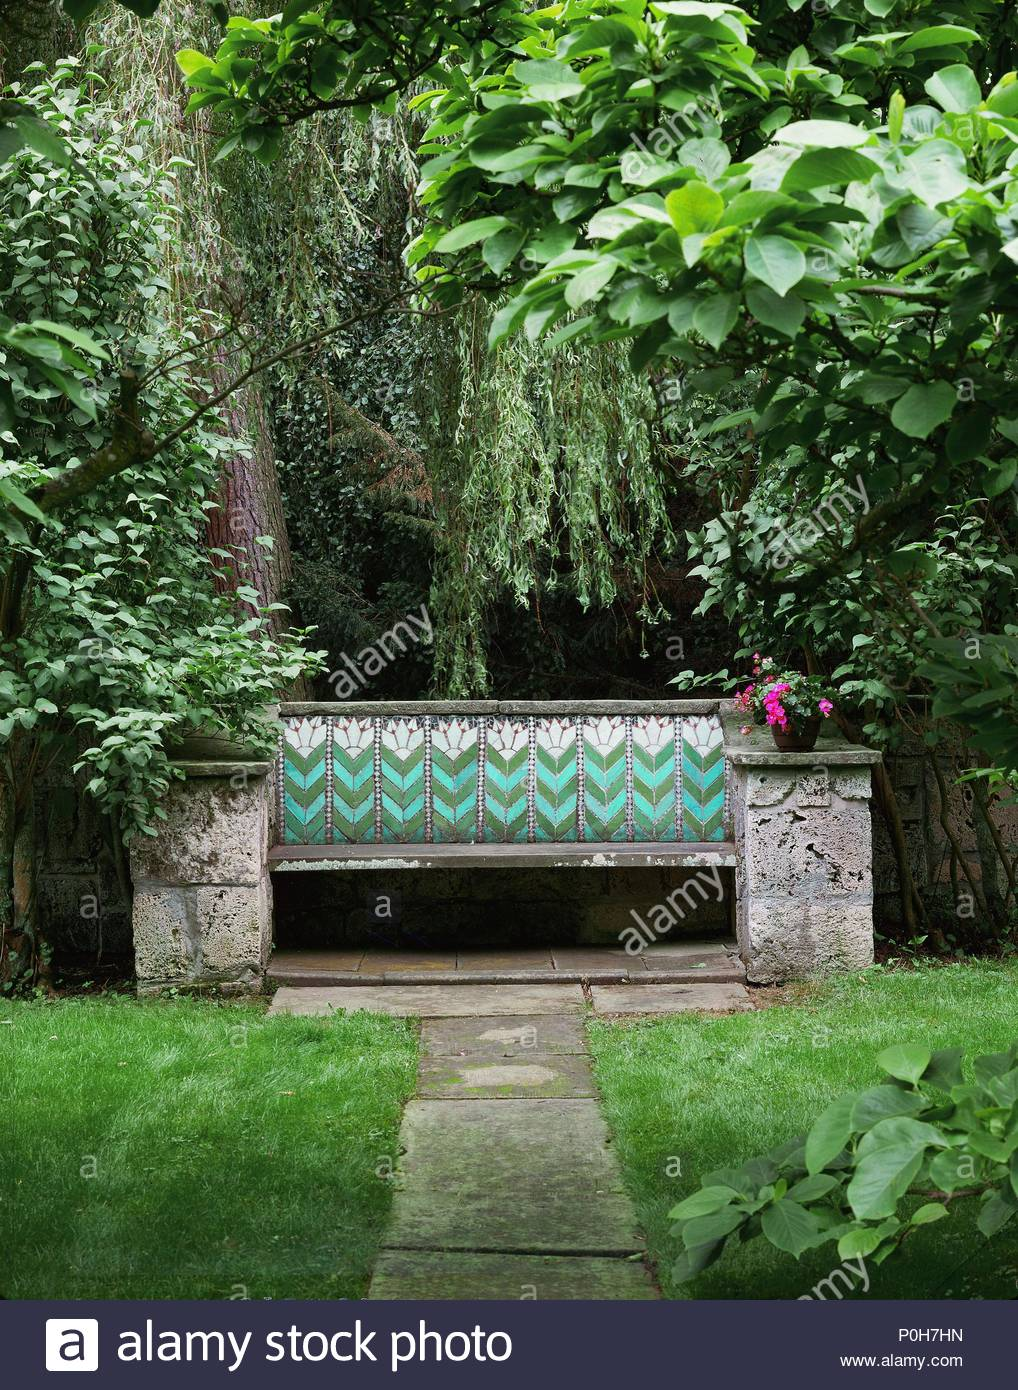 Stone bench with tile-design in the garden of House \